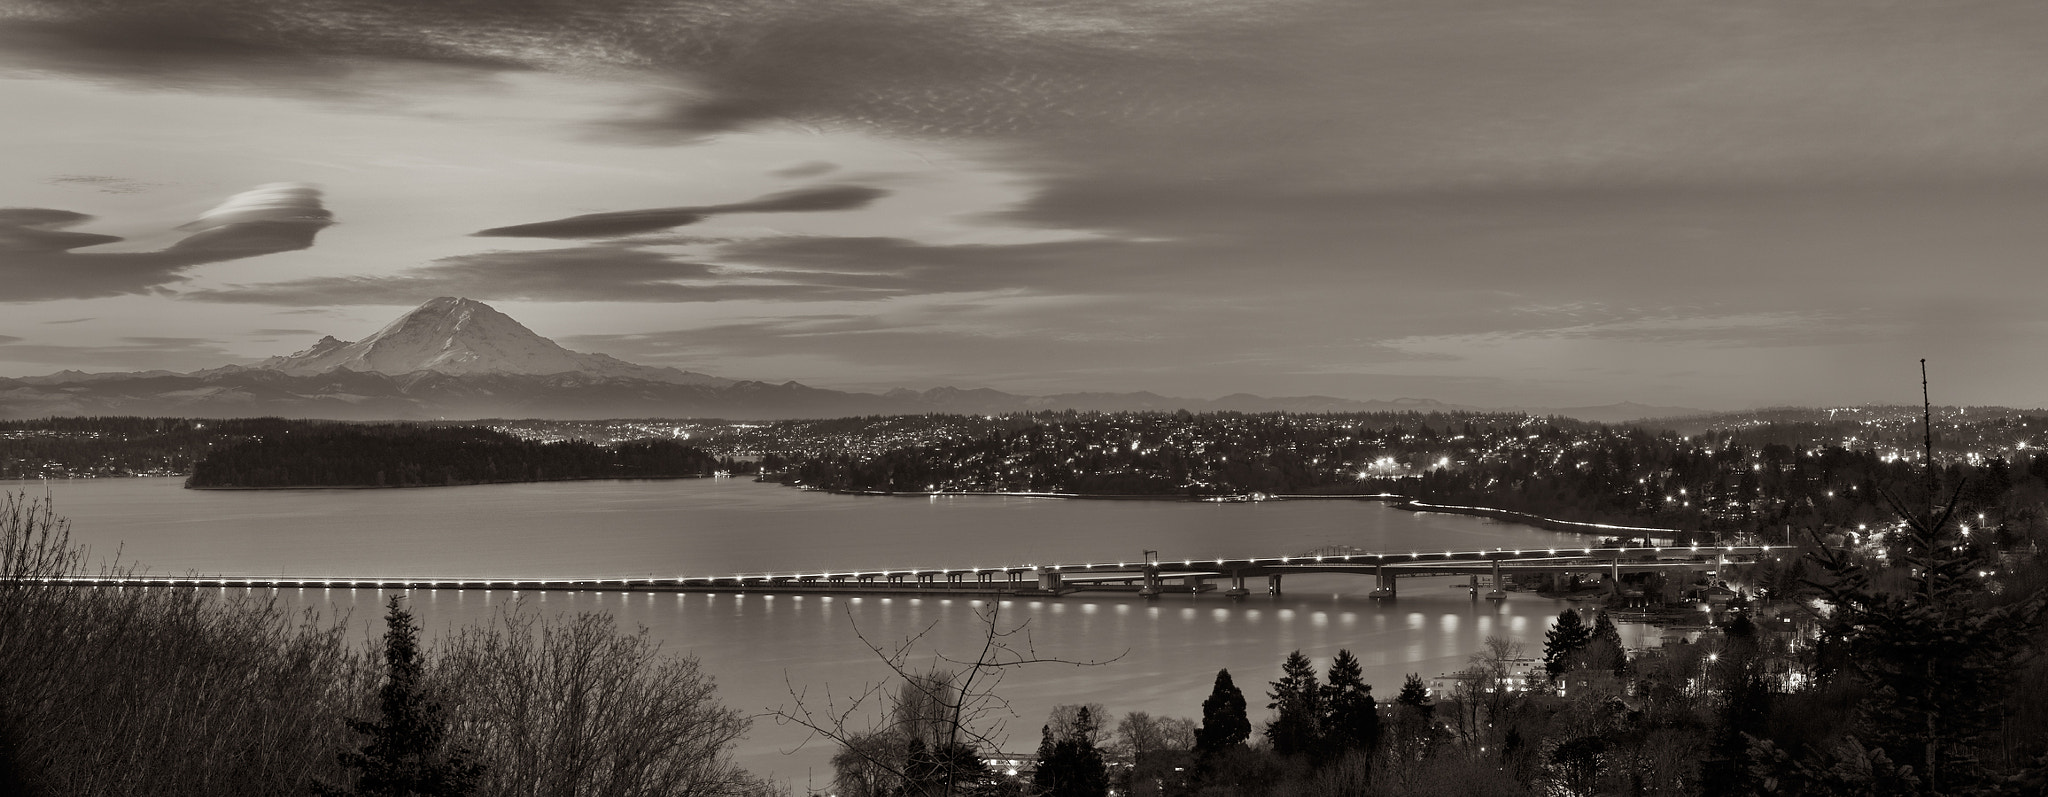 Photograph Mount Rainier from Leschi by Chris Wilhelm on 500px